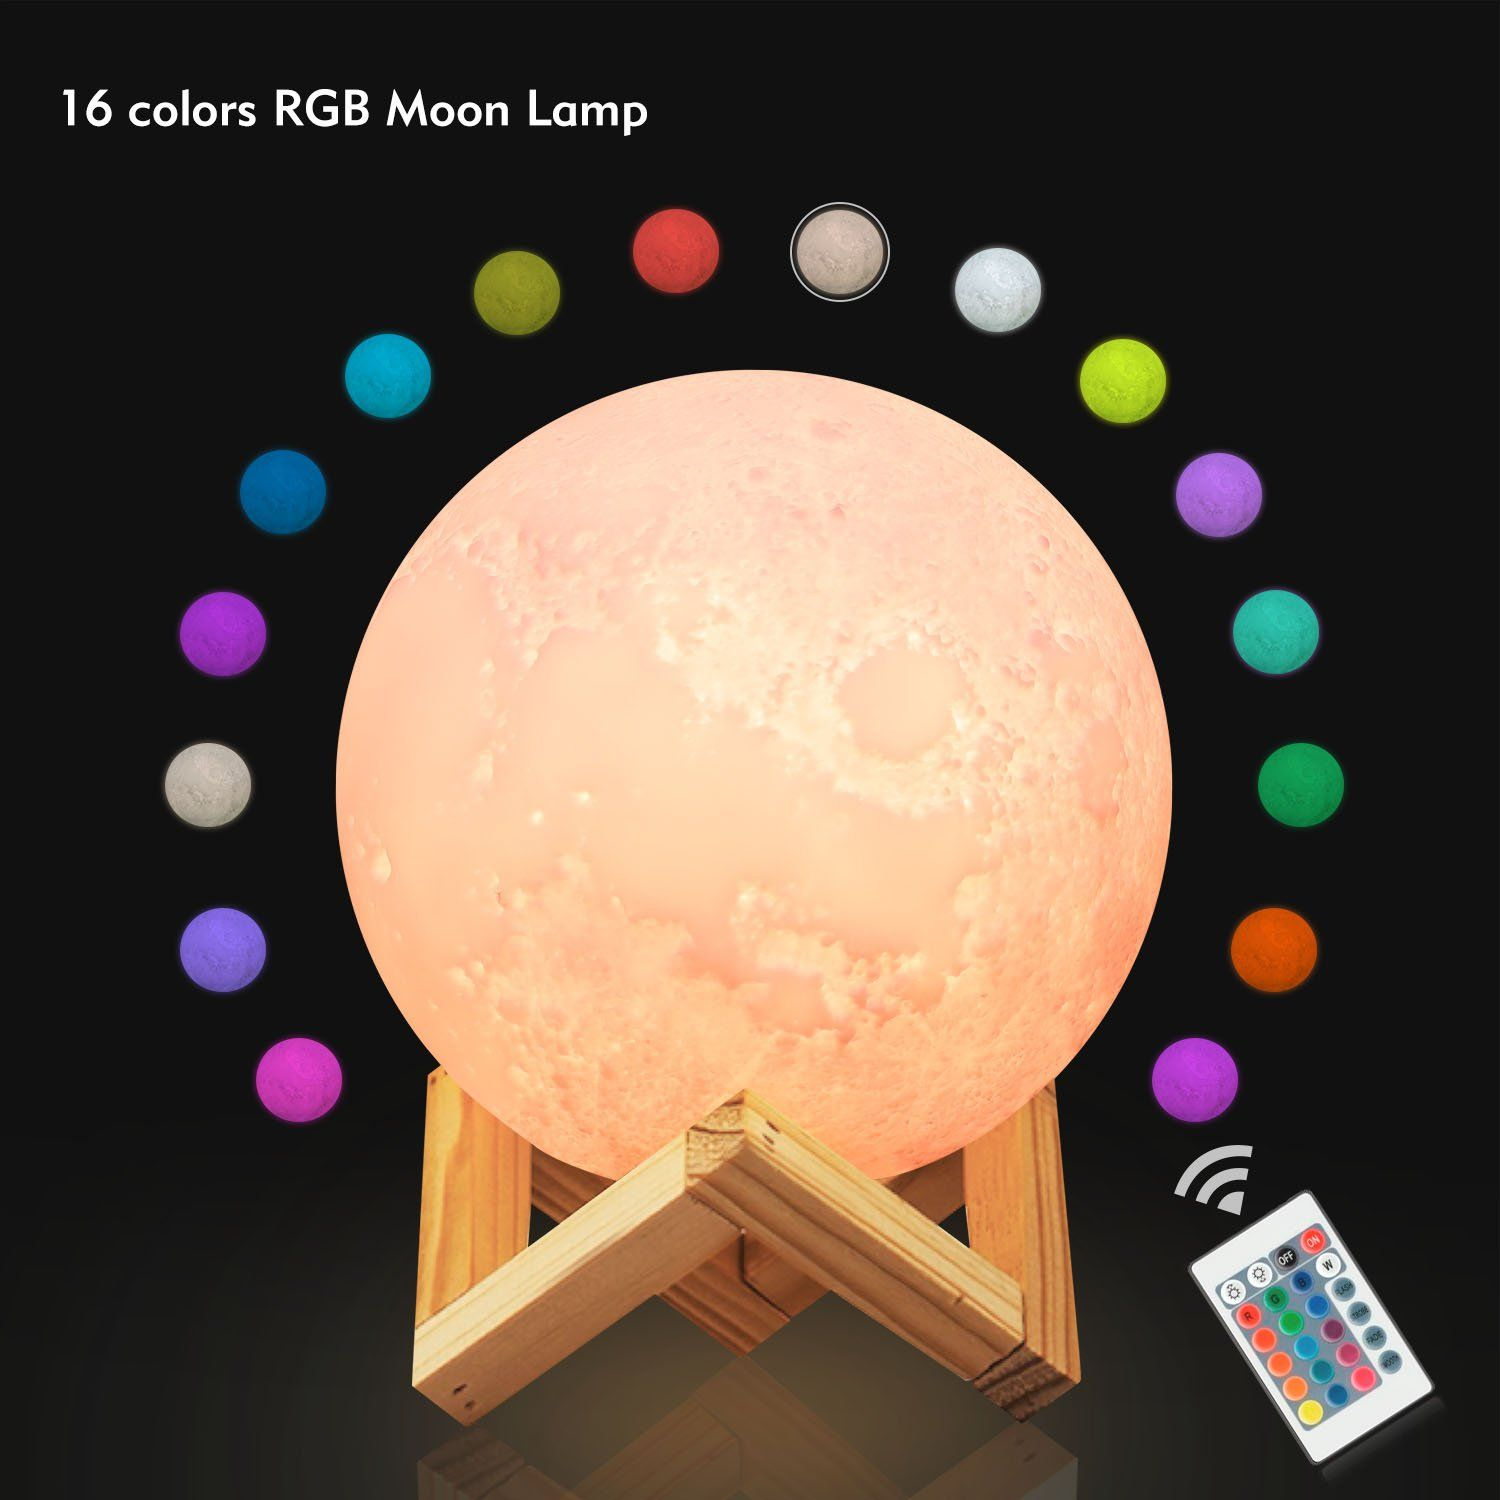 Ehobroc Moon Lamp 9 5 Inch Dimmable Remote Control 16 Colors Rgb Glowing Moon Globe Light 3d Glowing Moon Light With Stand Lunar M Globe Lights Lamp Moon Globe